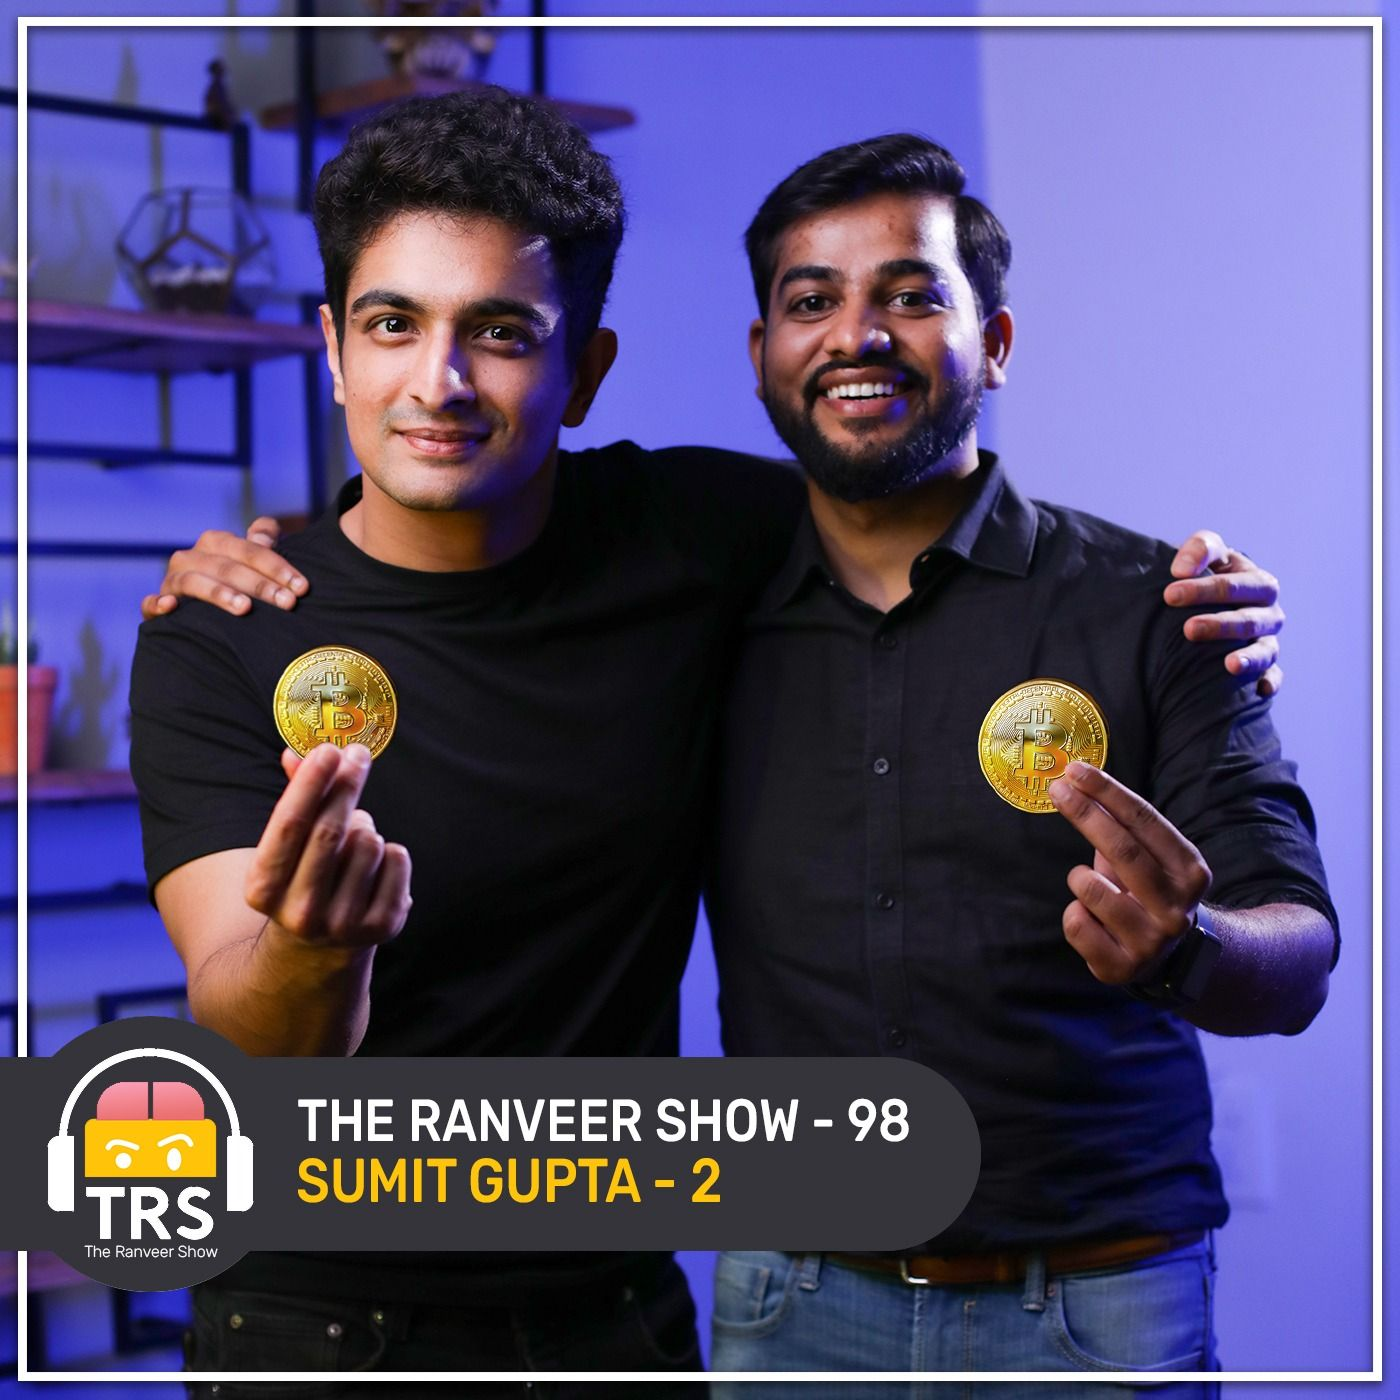 Cryptocurrency Special - Part 2 | Bitcoin Advanced Level By Sumit Gupta | The Ranveer Show 98